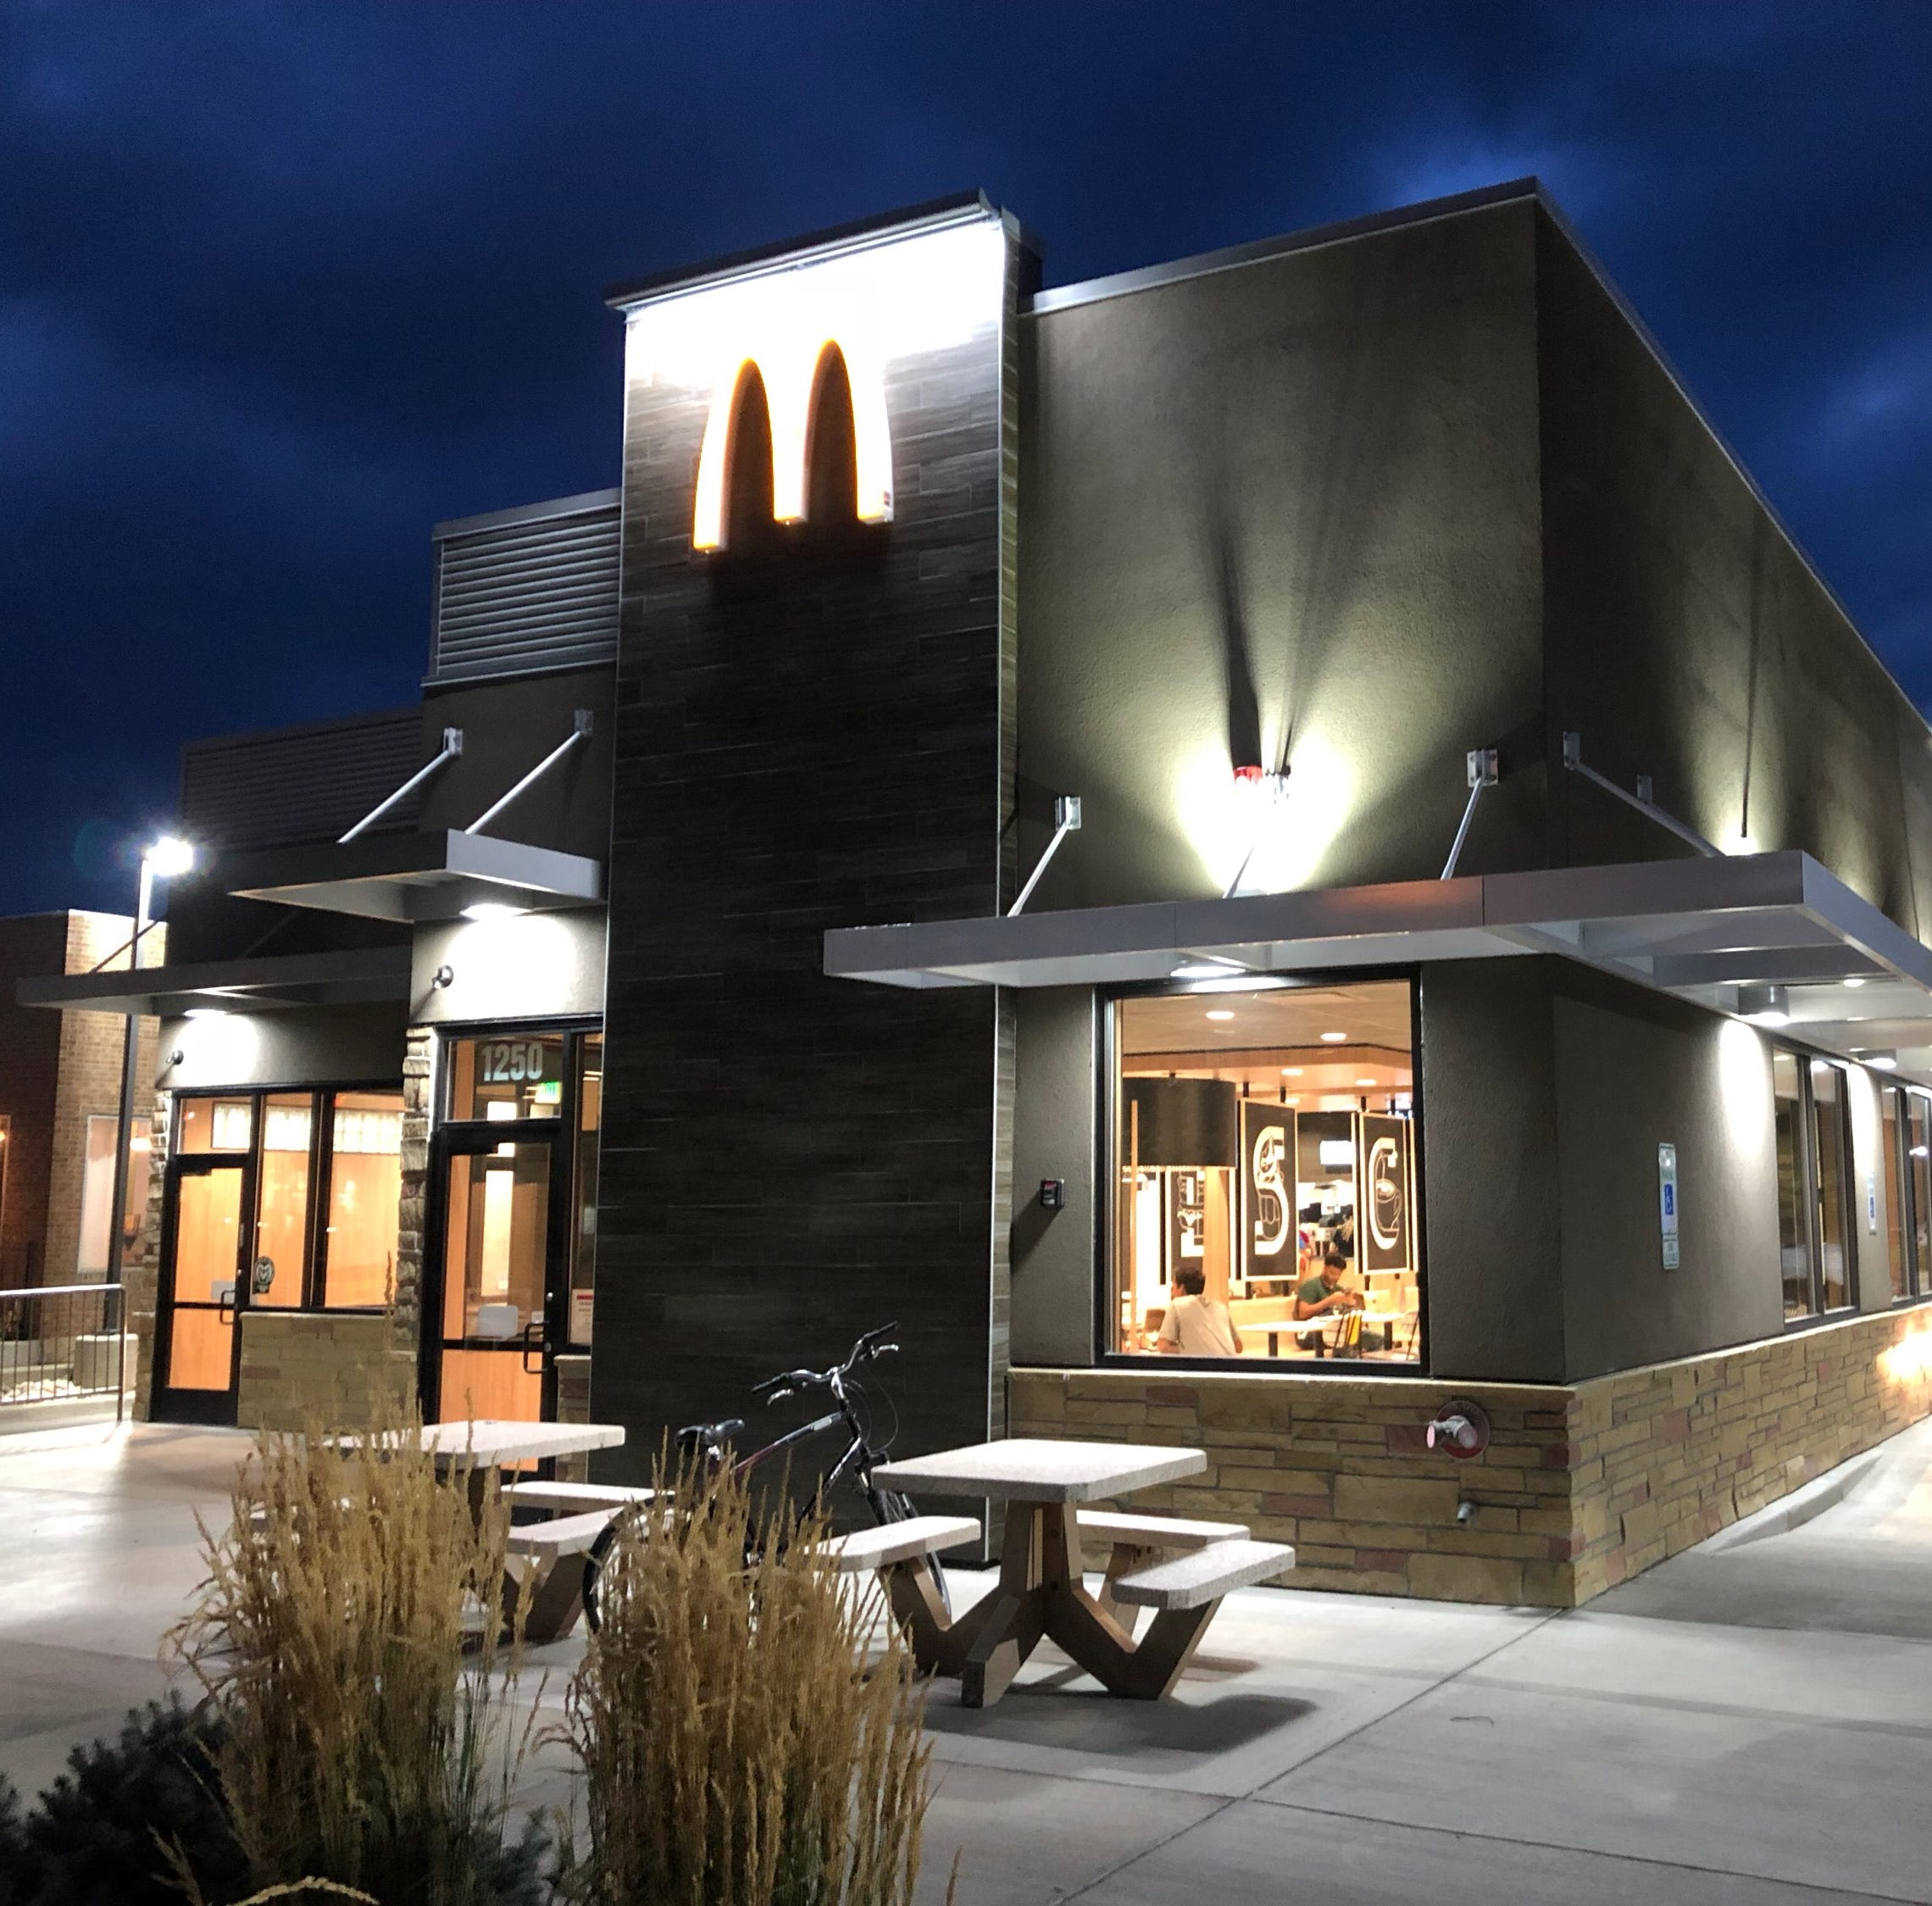 Fort Collins McDonald's getting new look, offering new ways to order